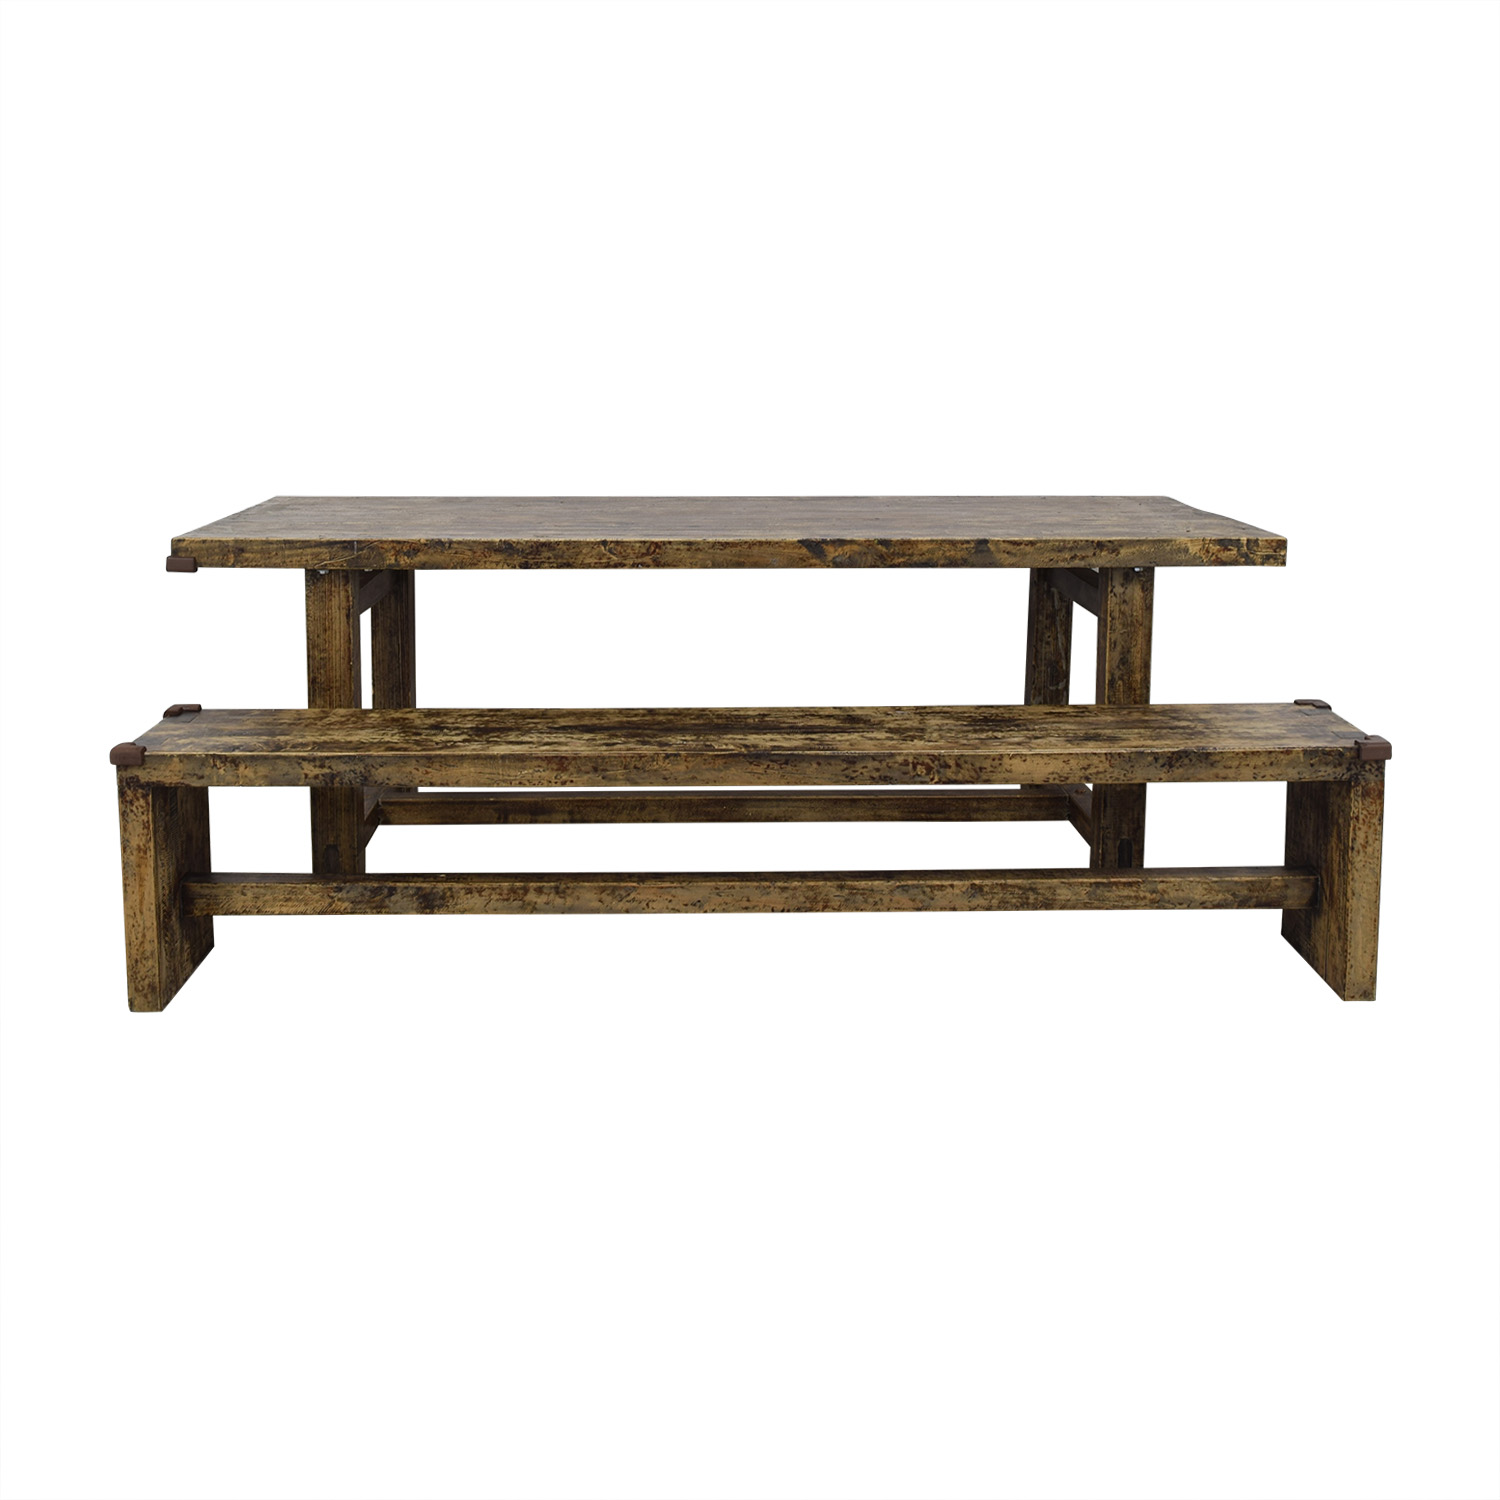 Rustic Farm Dining Table with Bench / Dining Sets